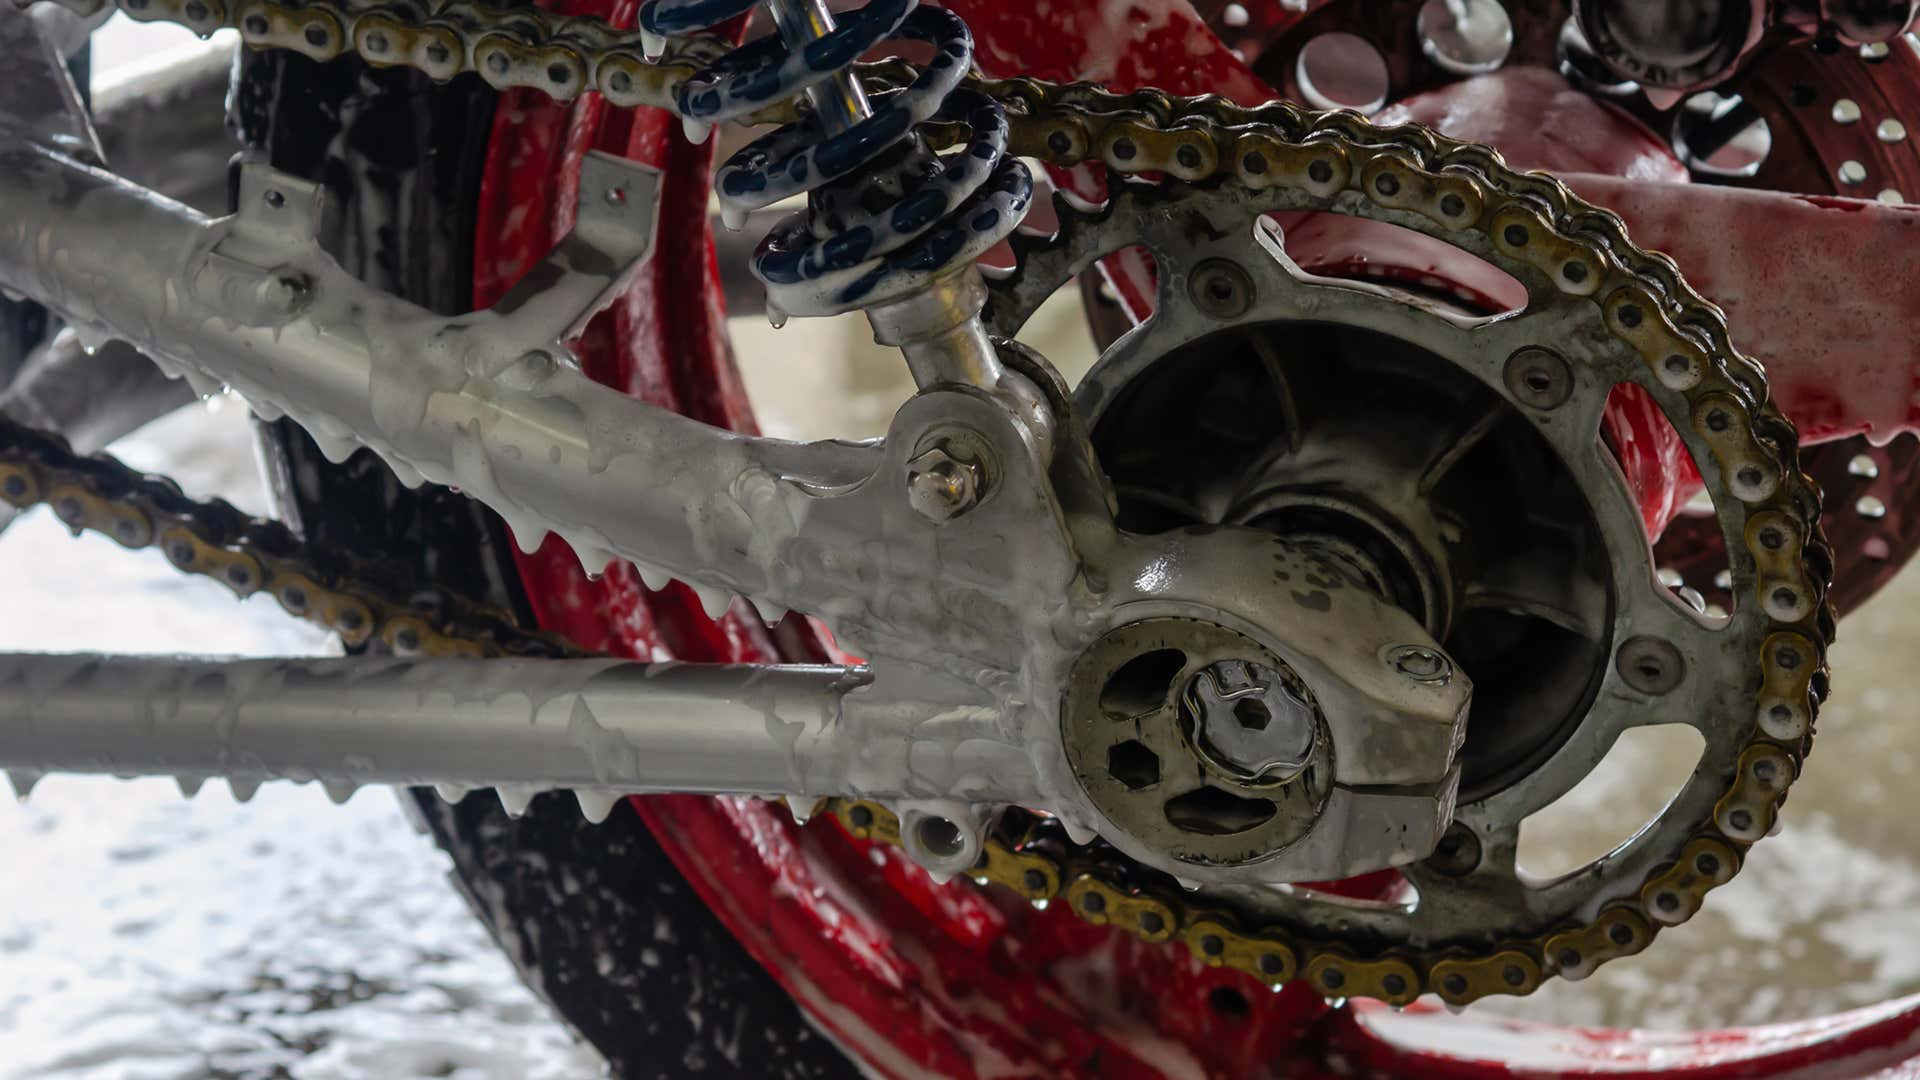 A motorcycle chain requires special attention, cleaning, and lubrication.